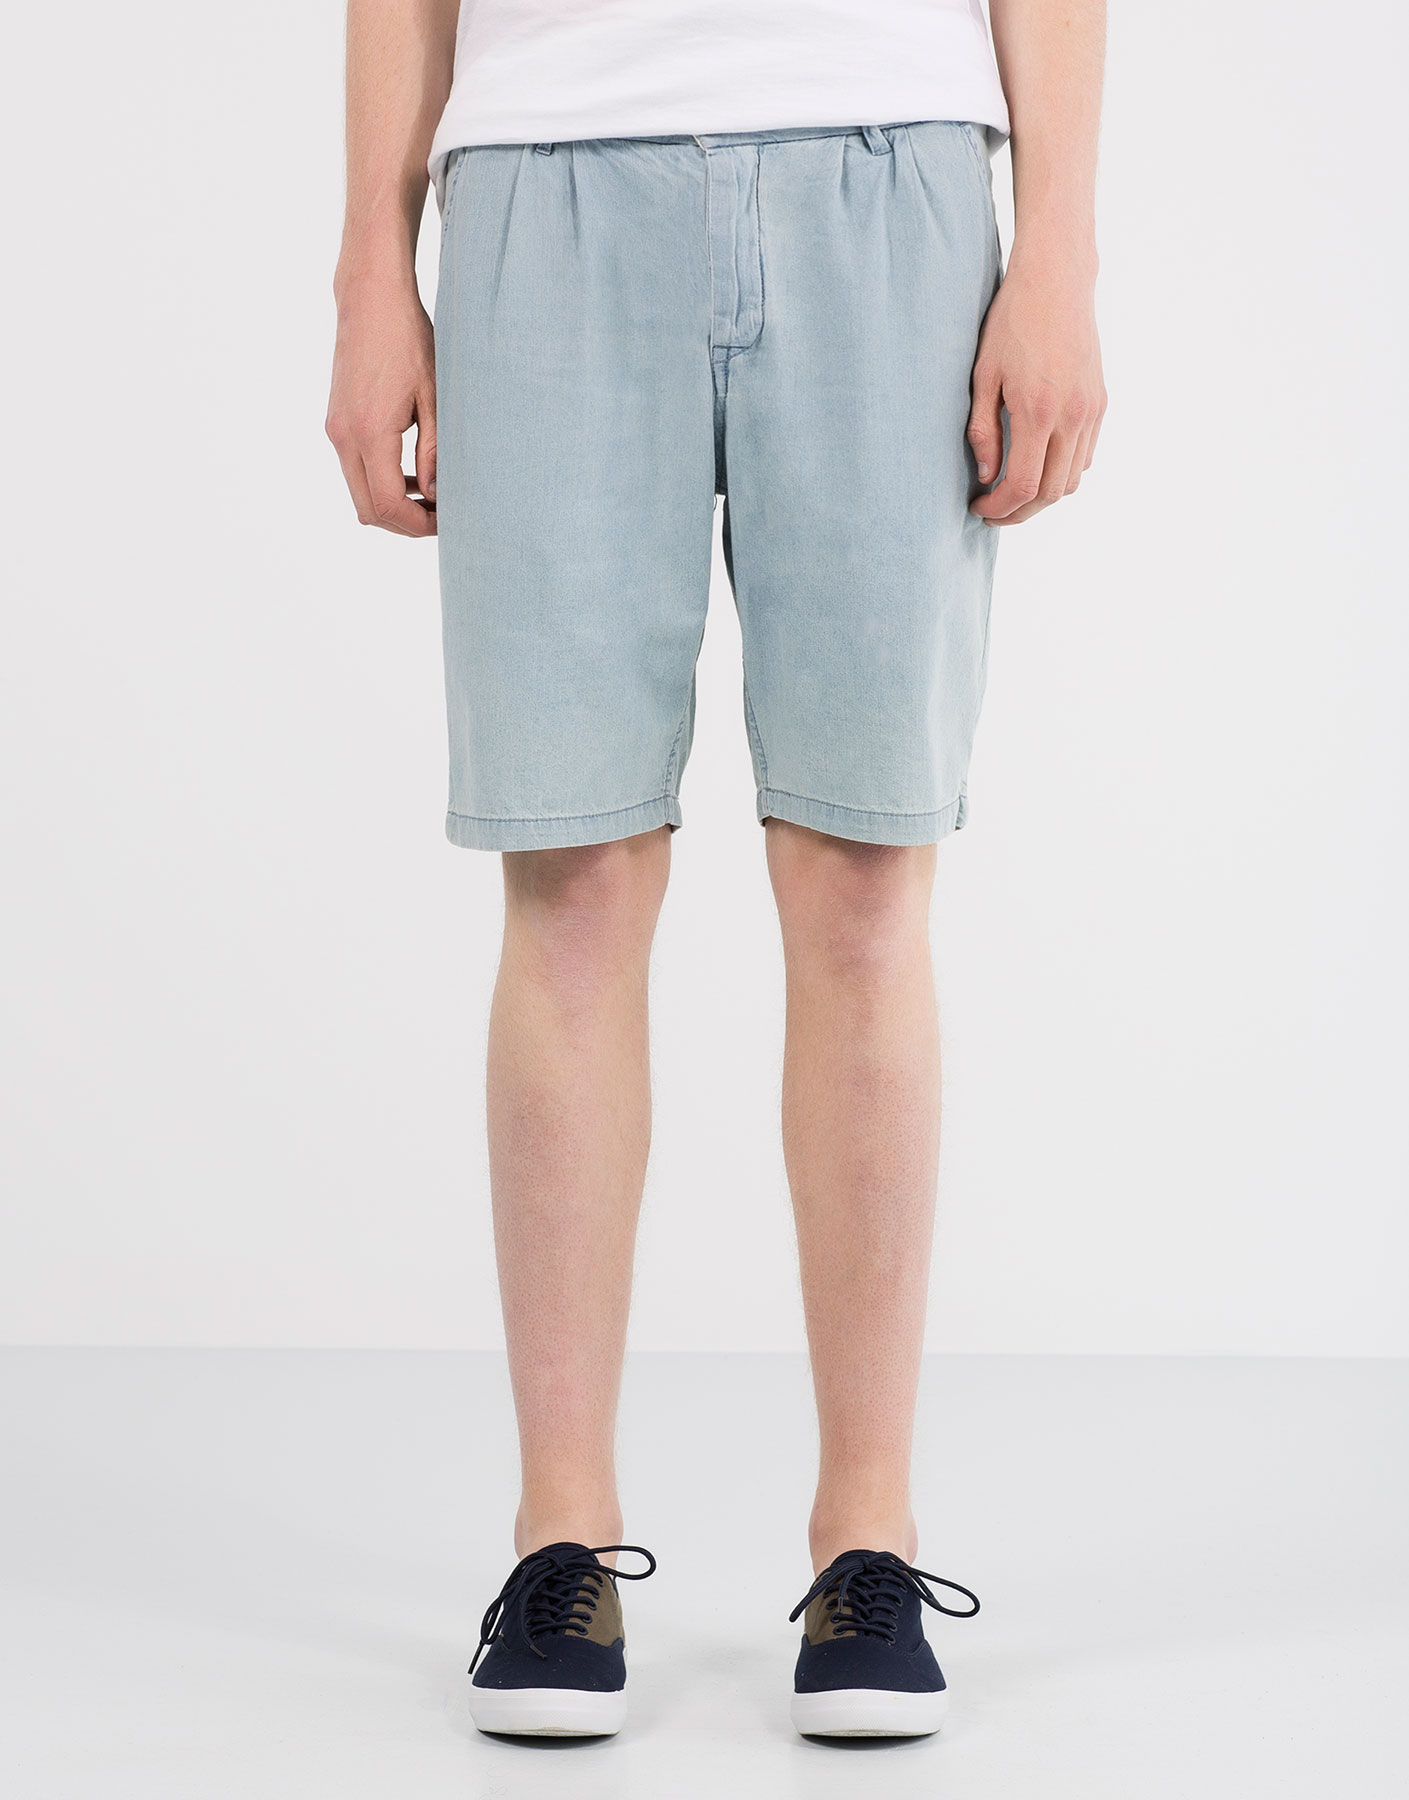 Light denim bermuda shorts